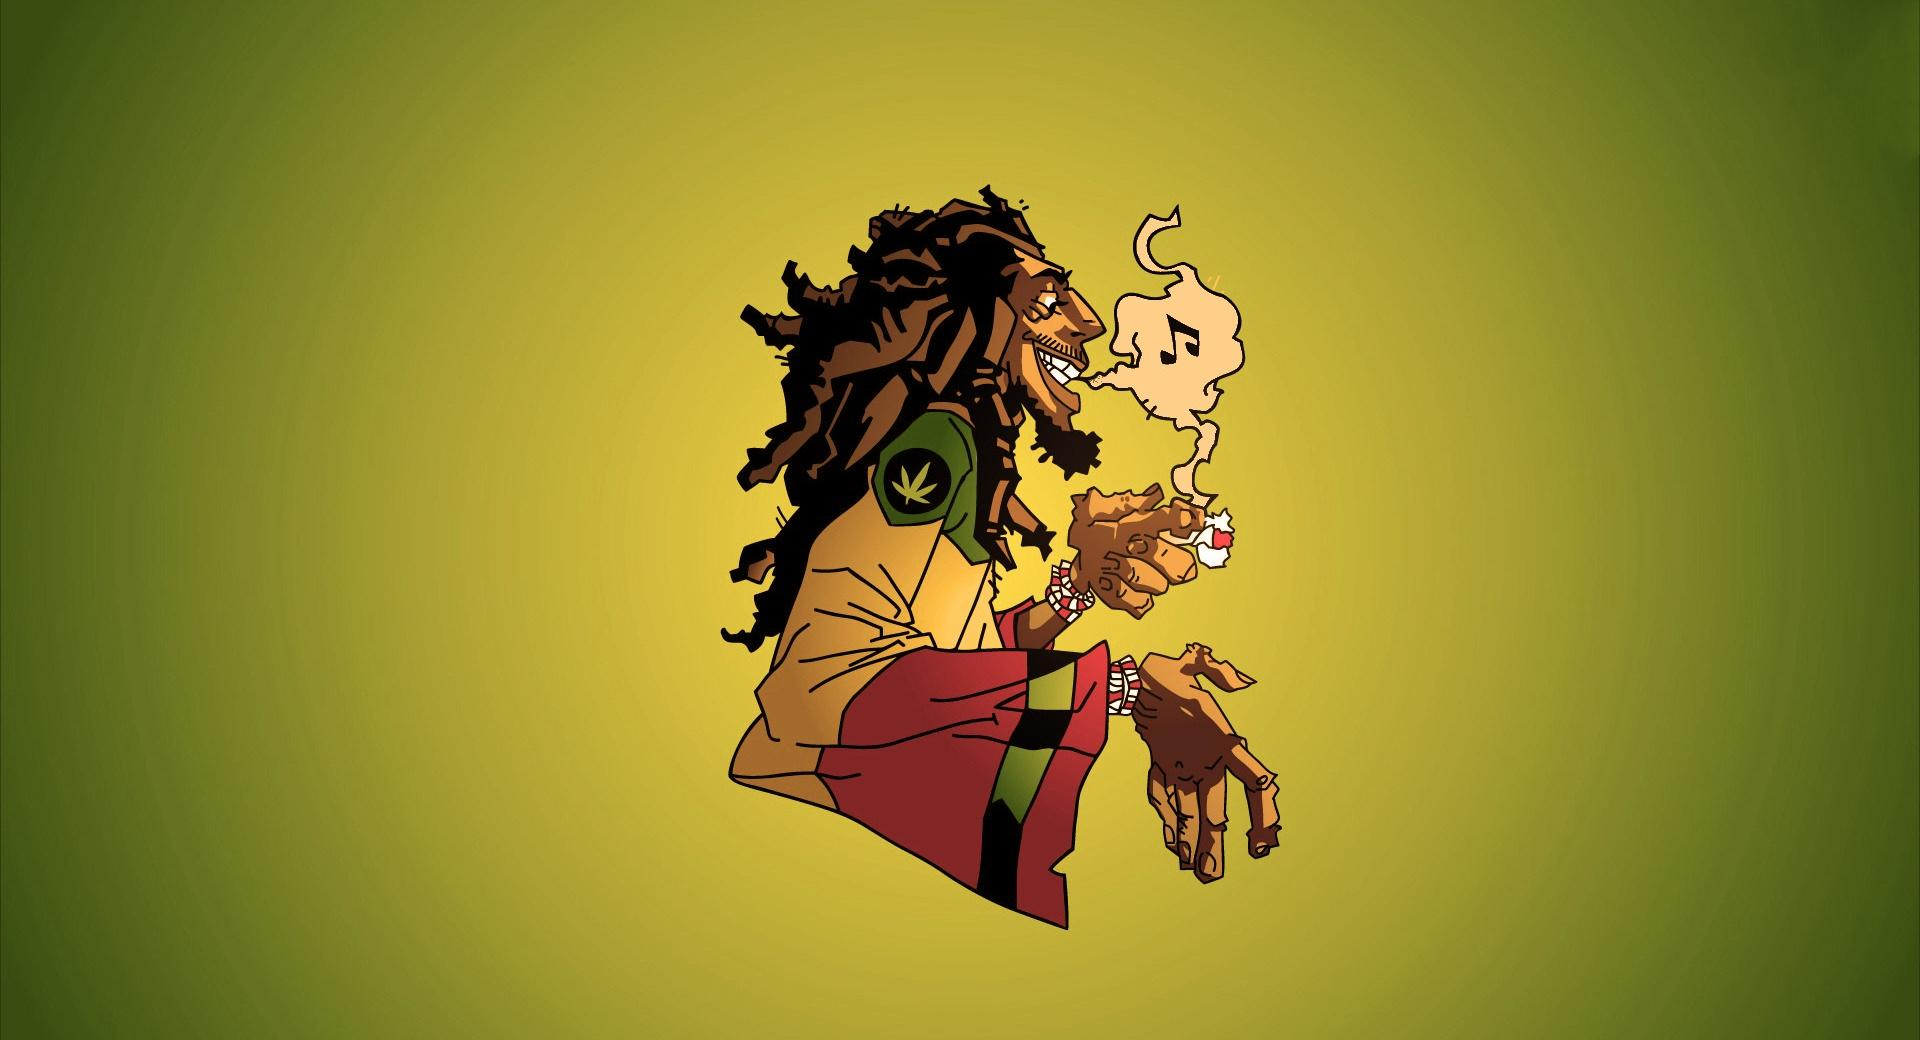 Bob Marley HQ at 1600 x 1200 size wallpapers HD quality